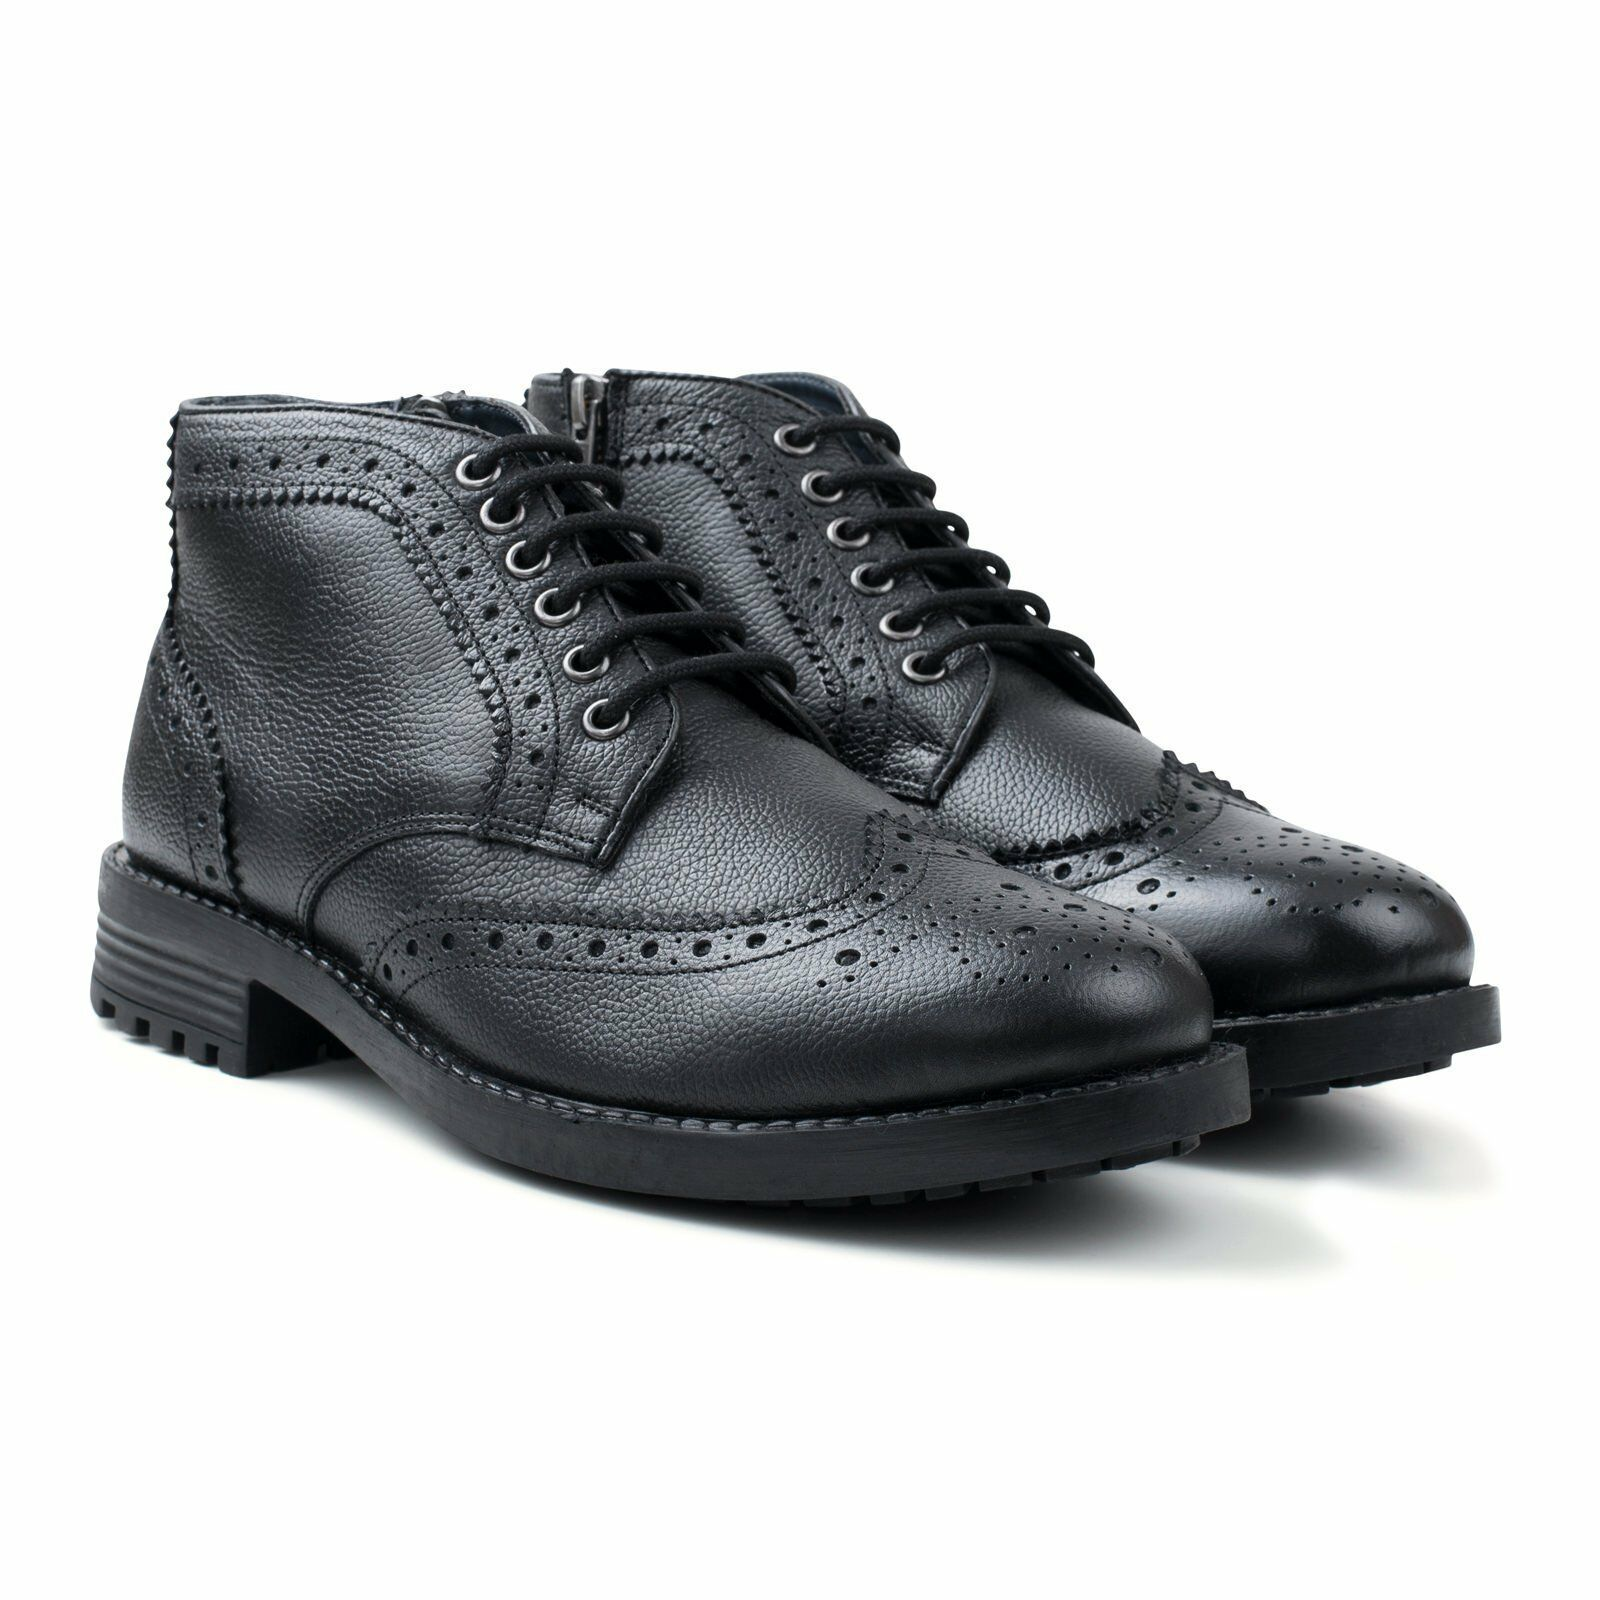 Redfoot Hans Mens Leather Zip & Lace Brogue Work Walking Boots Black UK 9